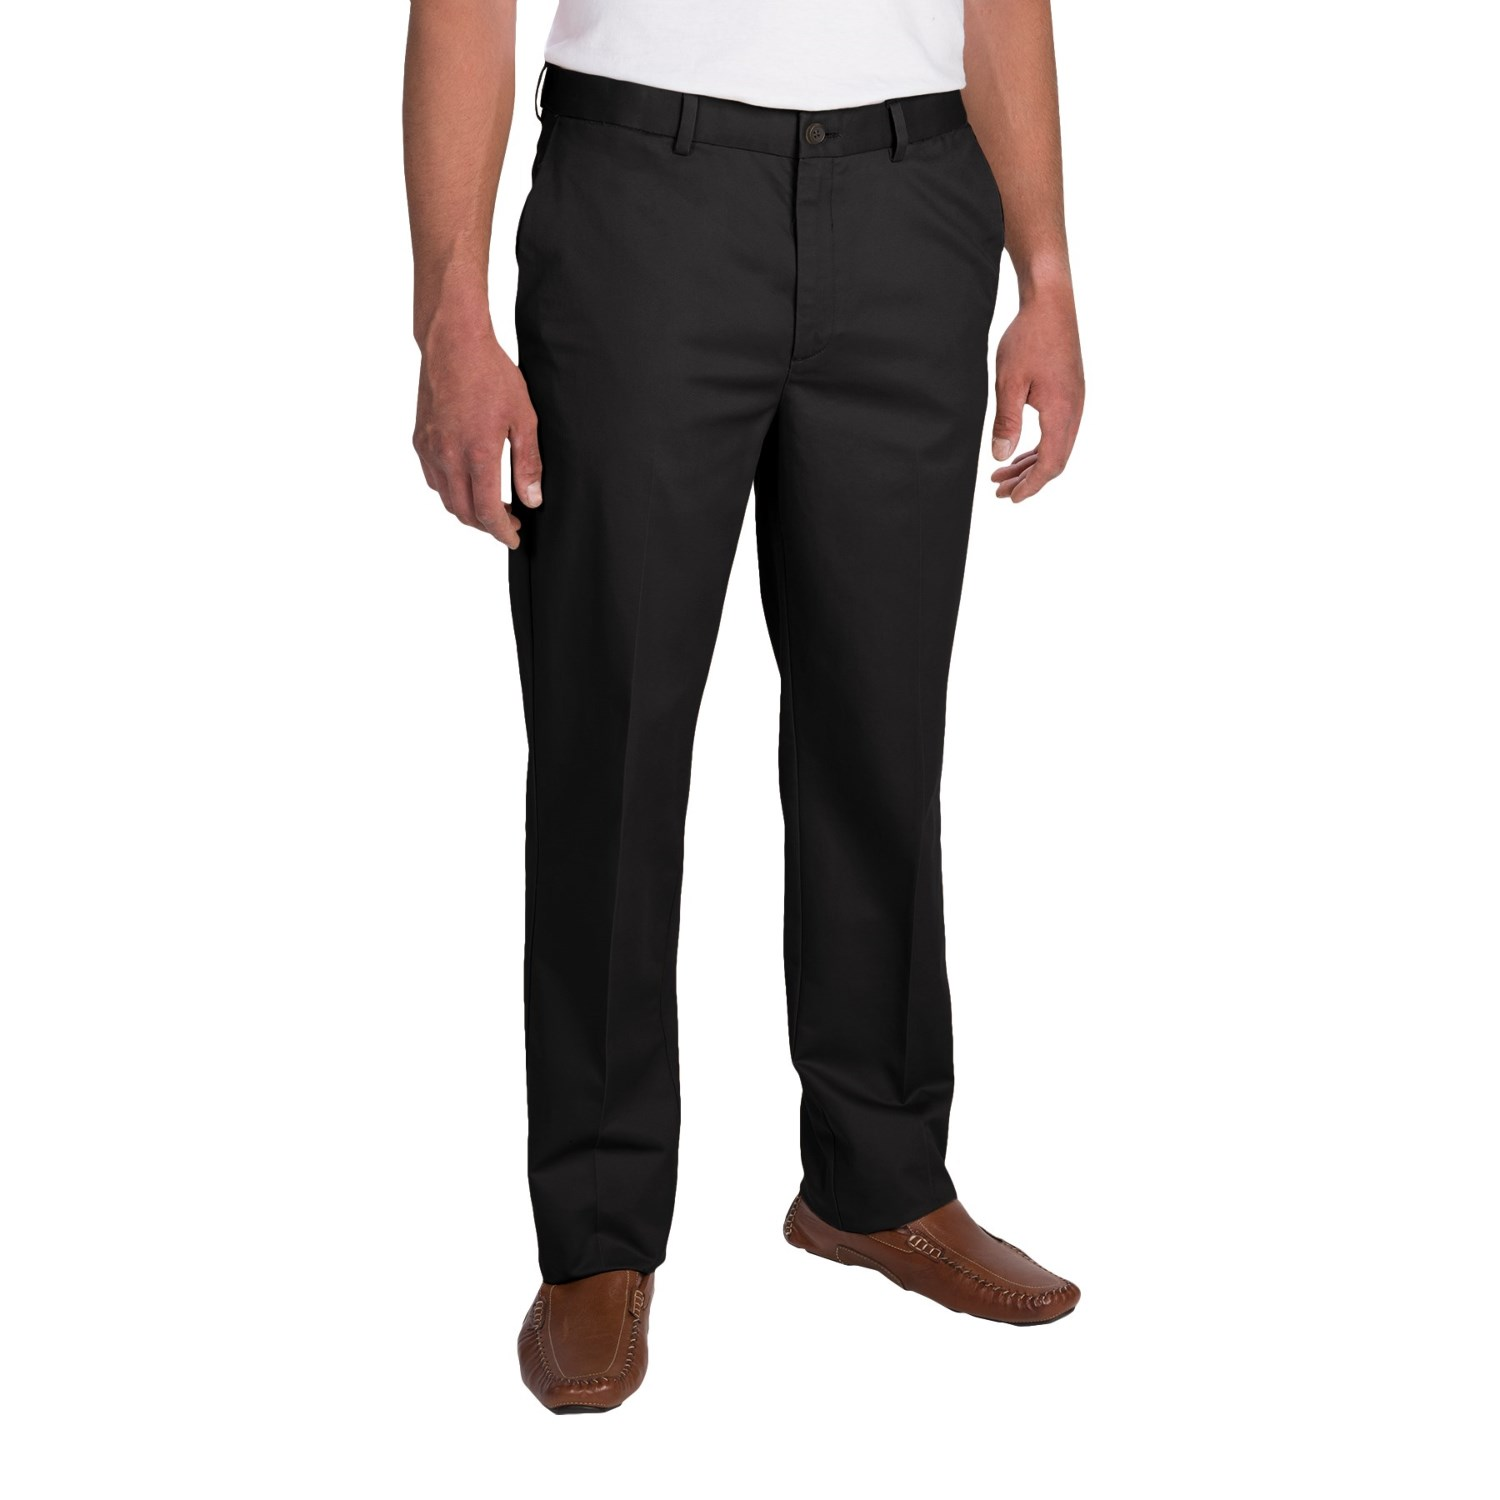 Non Pleated Dress Pants